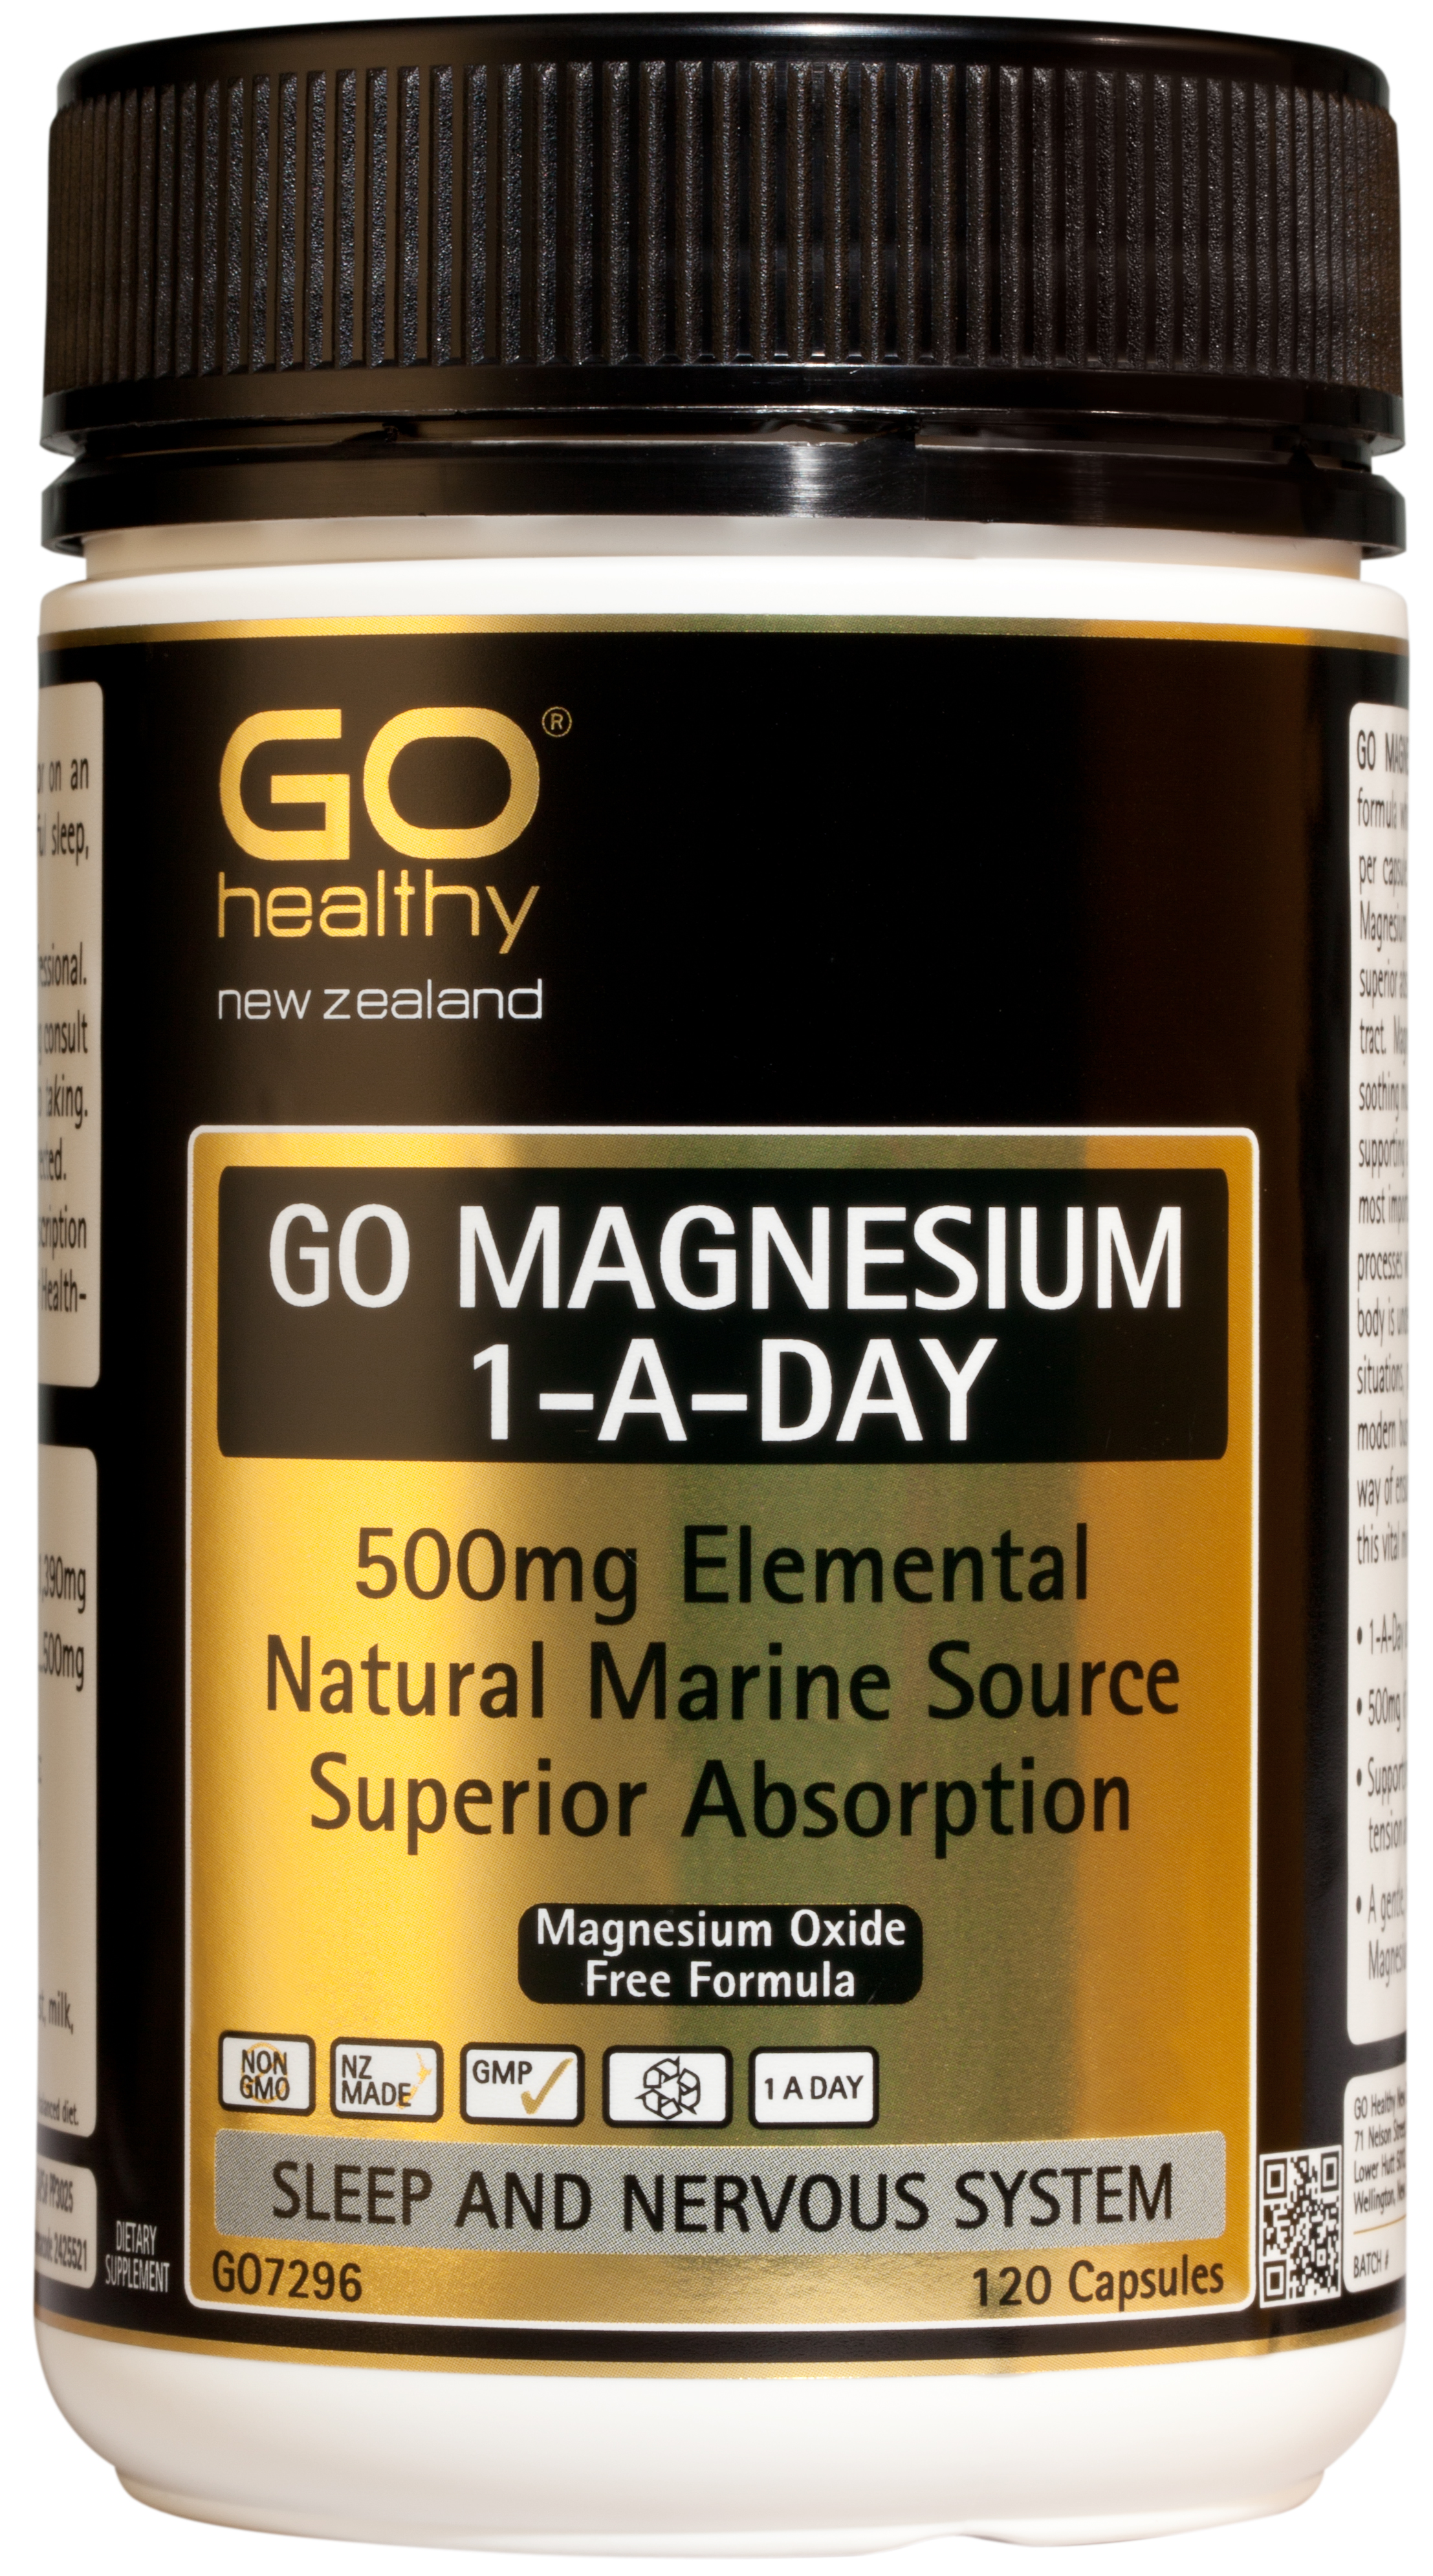 GO Healthy Magnesium 1-A-Day 120 Capsules